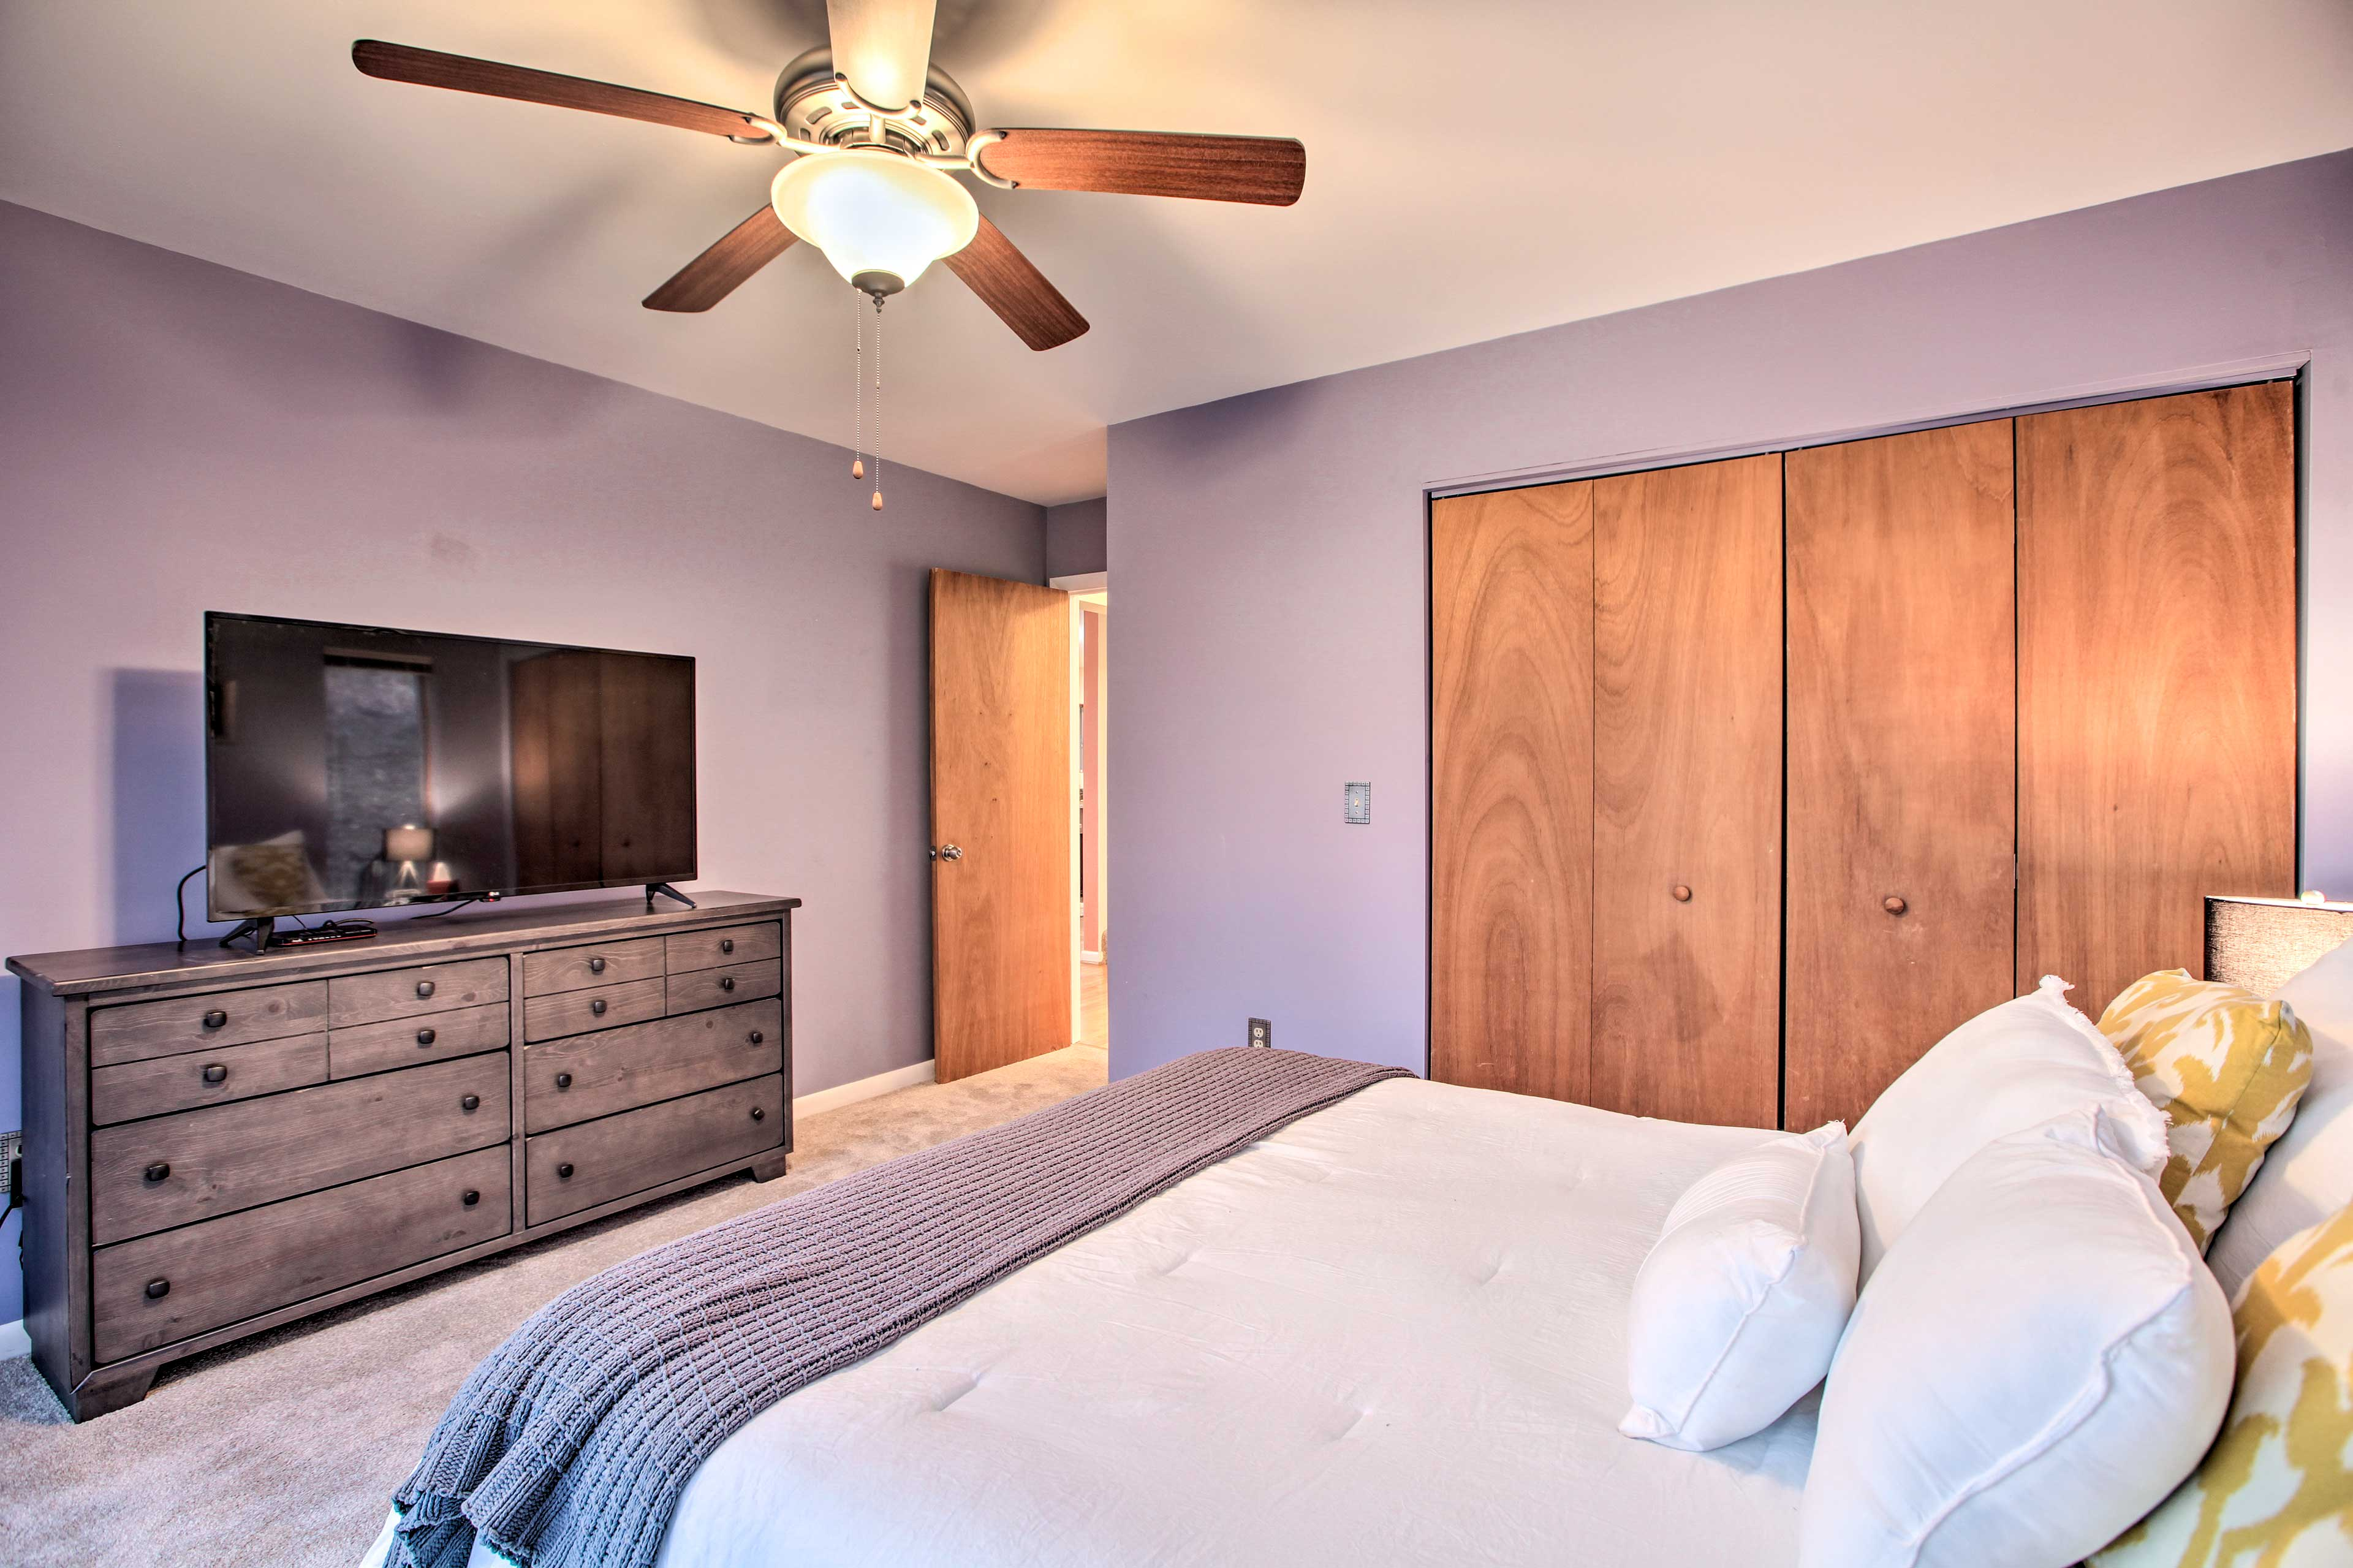 Hunker down for the night in this queen bed.